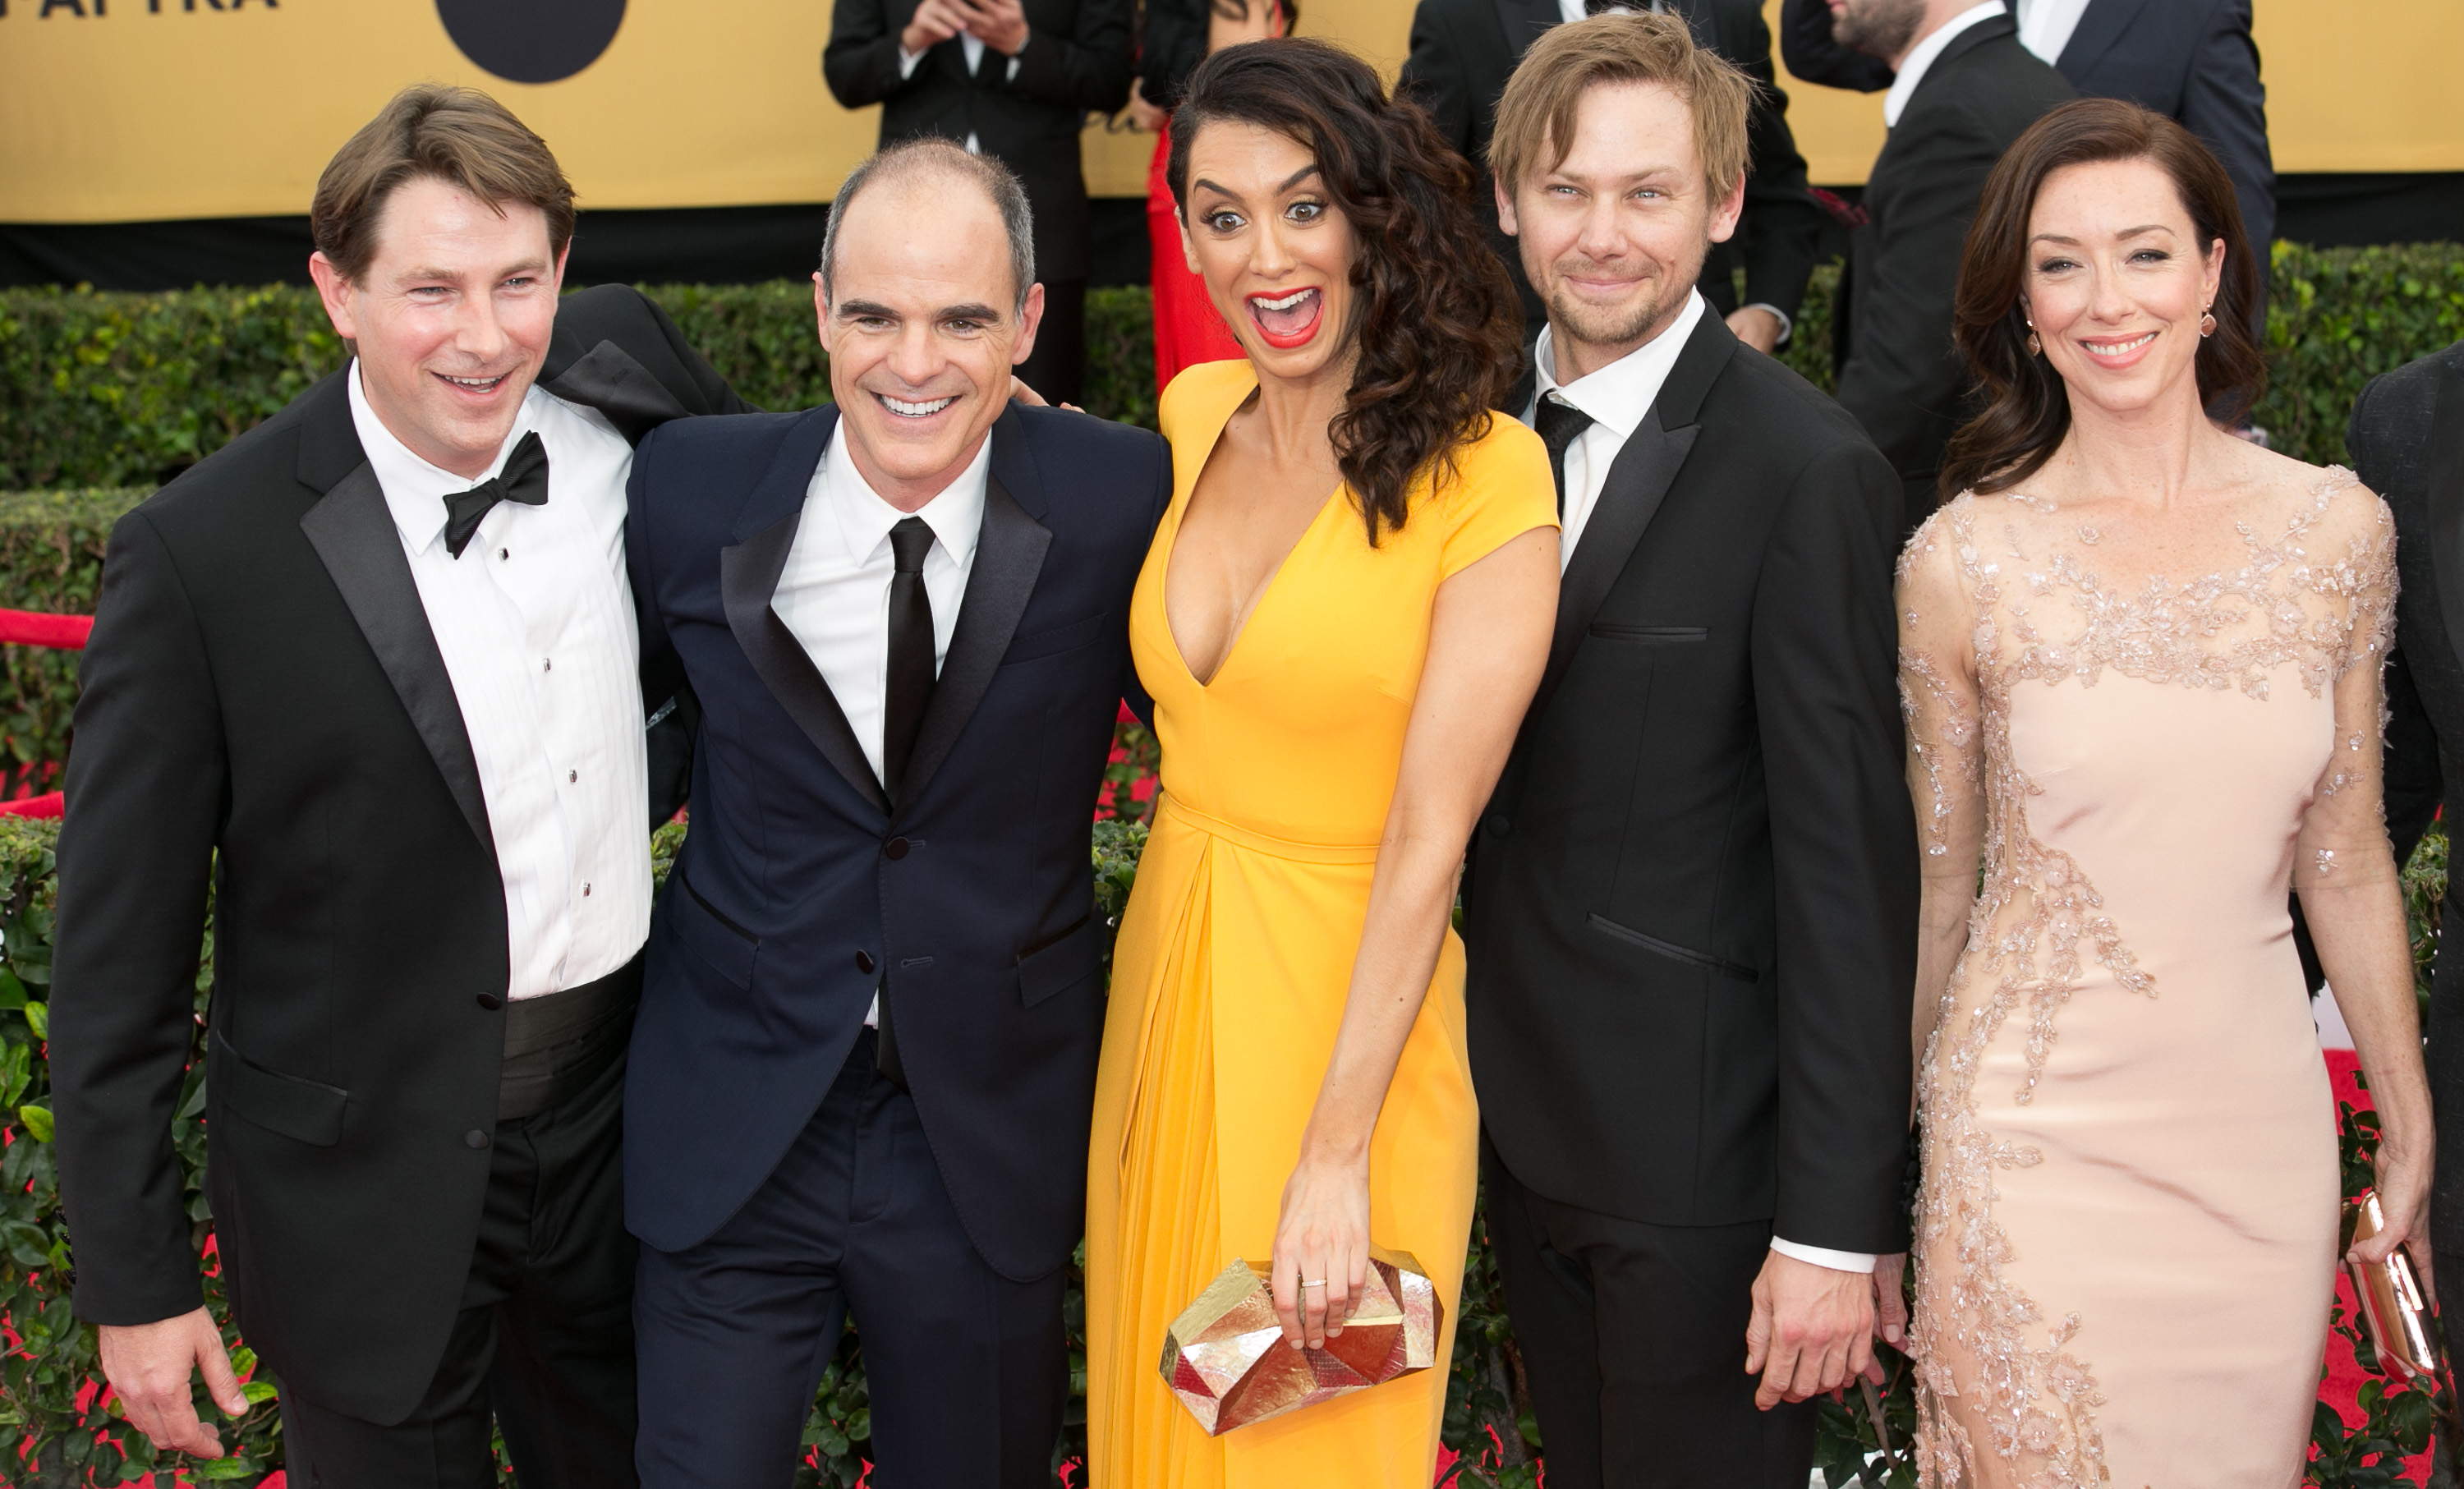 21st Annual SAG (Screen Actors Guild) Awards at Los Angeles Shrine Exposition Center - Arrivals  Featuring: Derek Cecil, Michael Kelly, Mozhan Marno, Jimmi Simpson, Molly Parker, Michael Gill, Jayne Atkinson, Joanna Going and Rachel Brosnahan Where: Los Angeles, California, United States When: 25 Jan 2015 Credit: Brian To/WENN.com